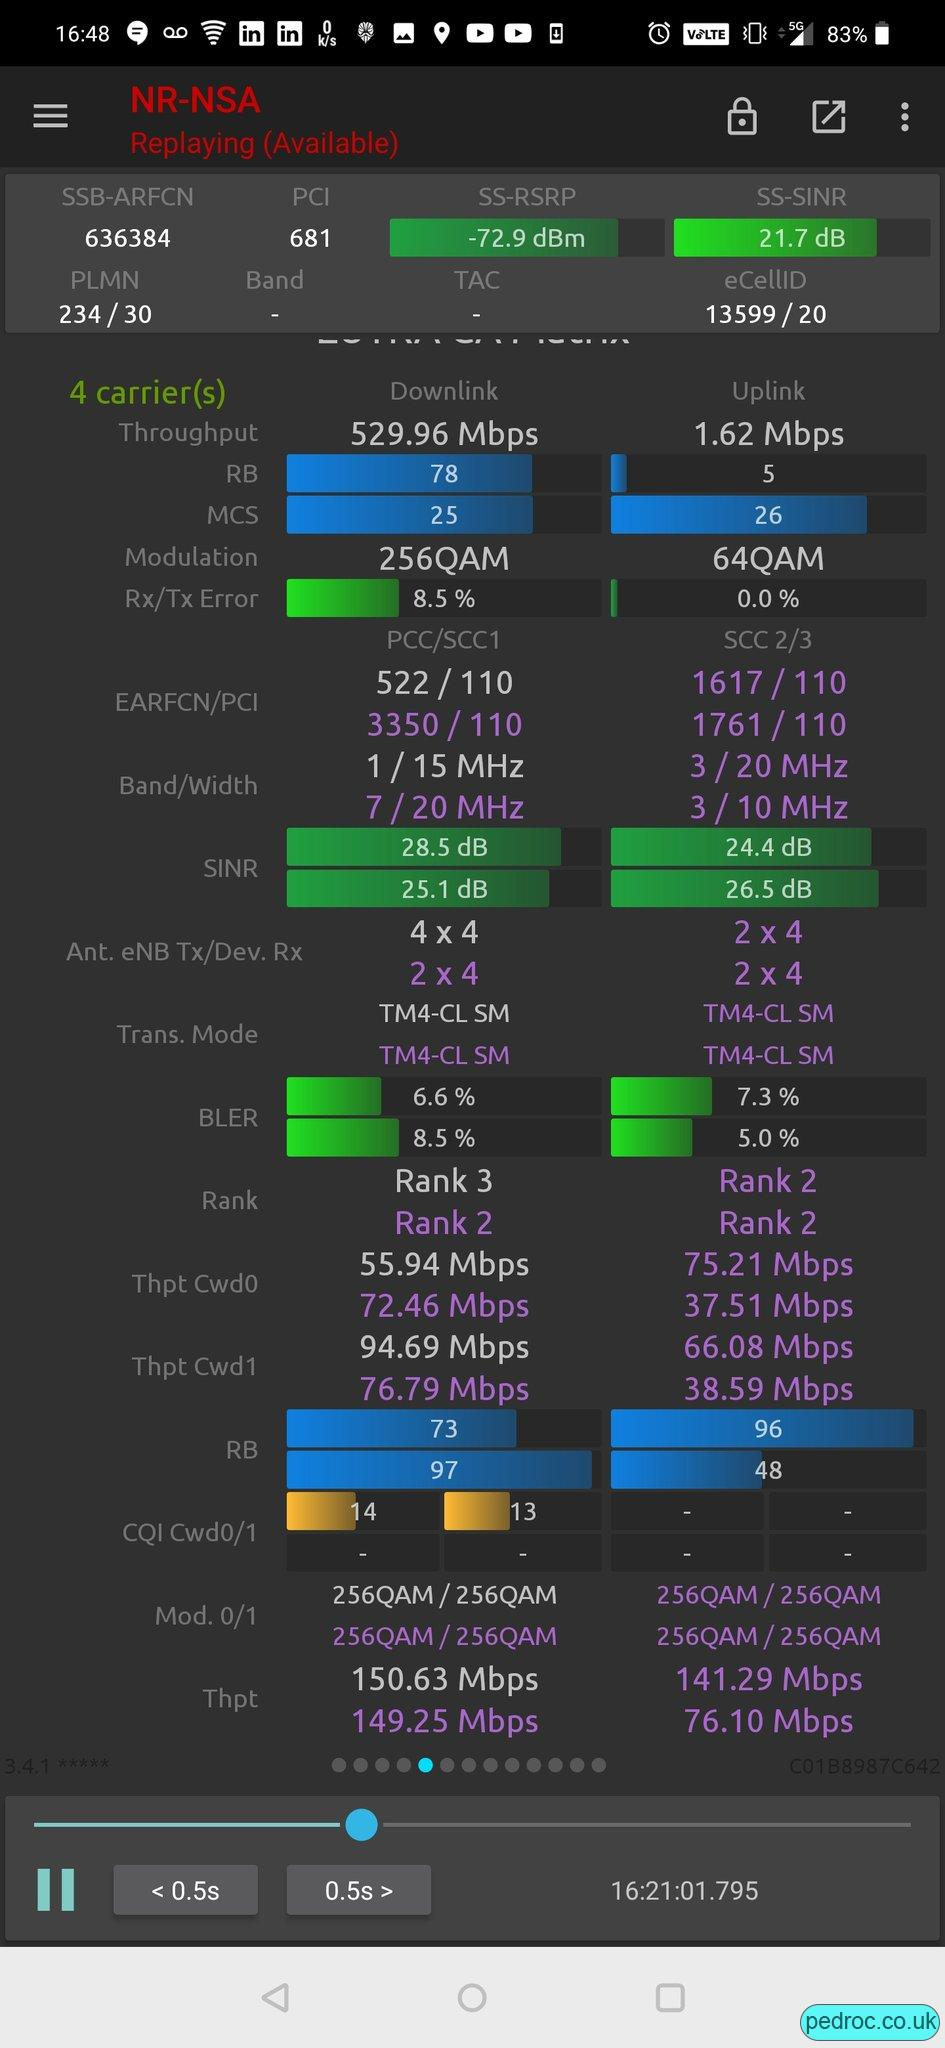 4G field test performance on the BT/EE Ericsson 5G site.